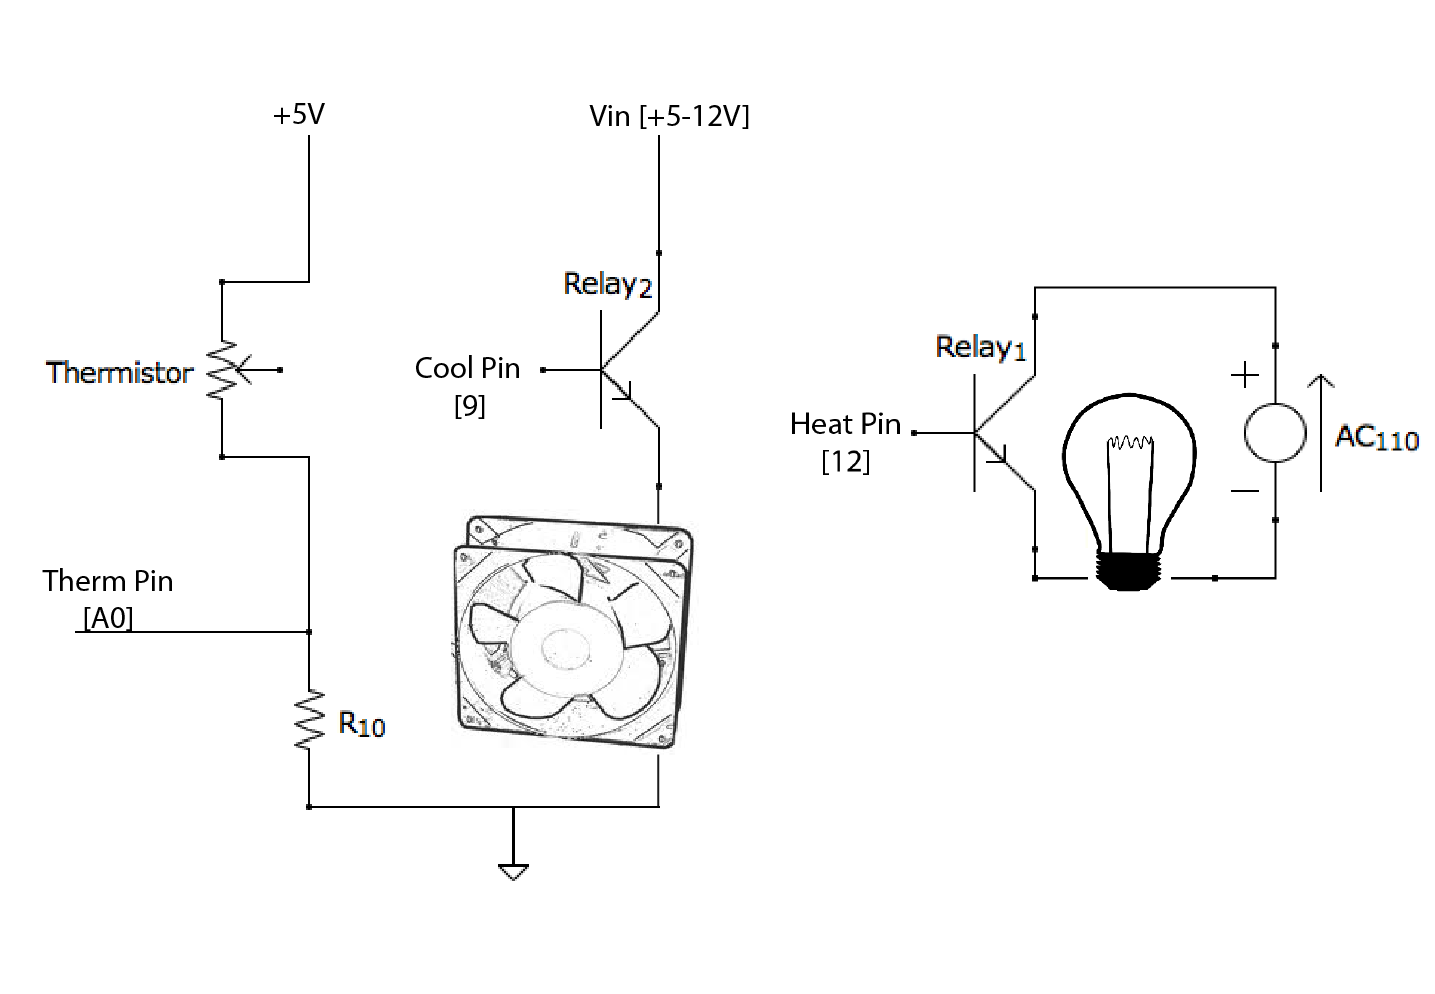 Light Bulb Pcr L31487 on led light schematic diagram